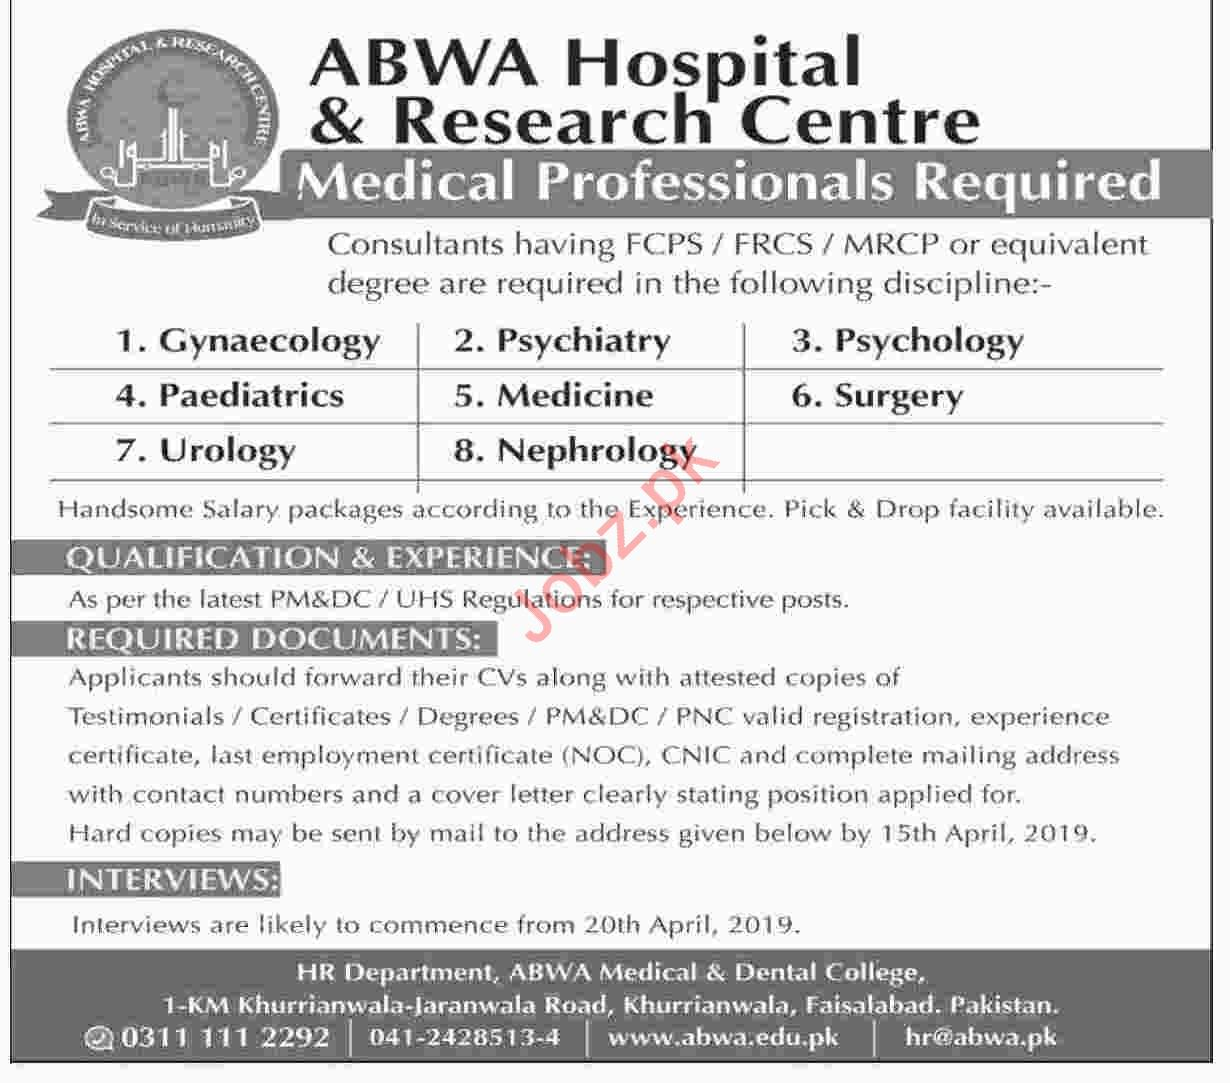 ABWA Hospital & Research Centre Medical Professionals Jobs